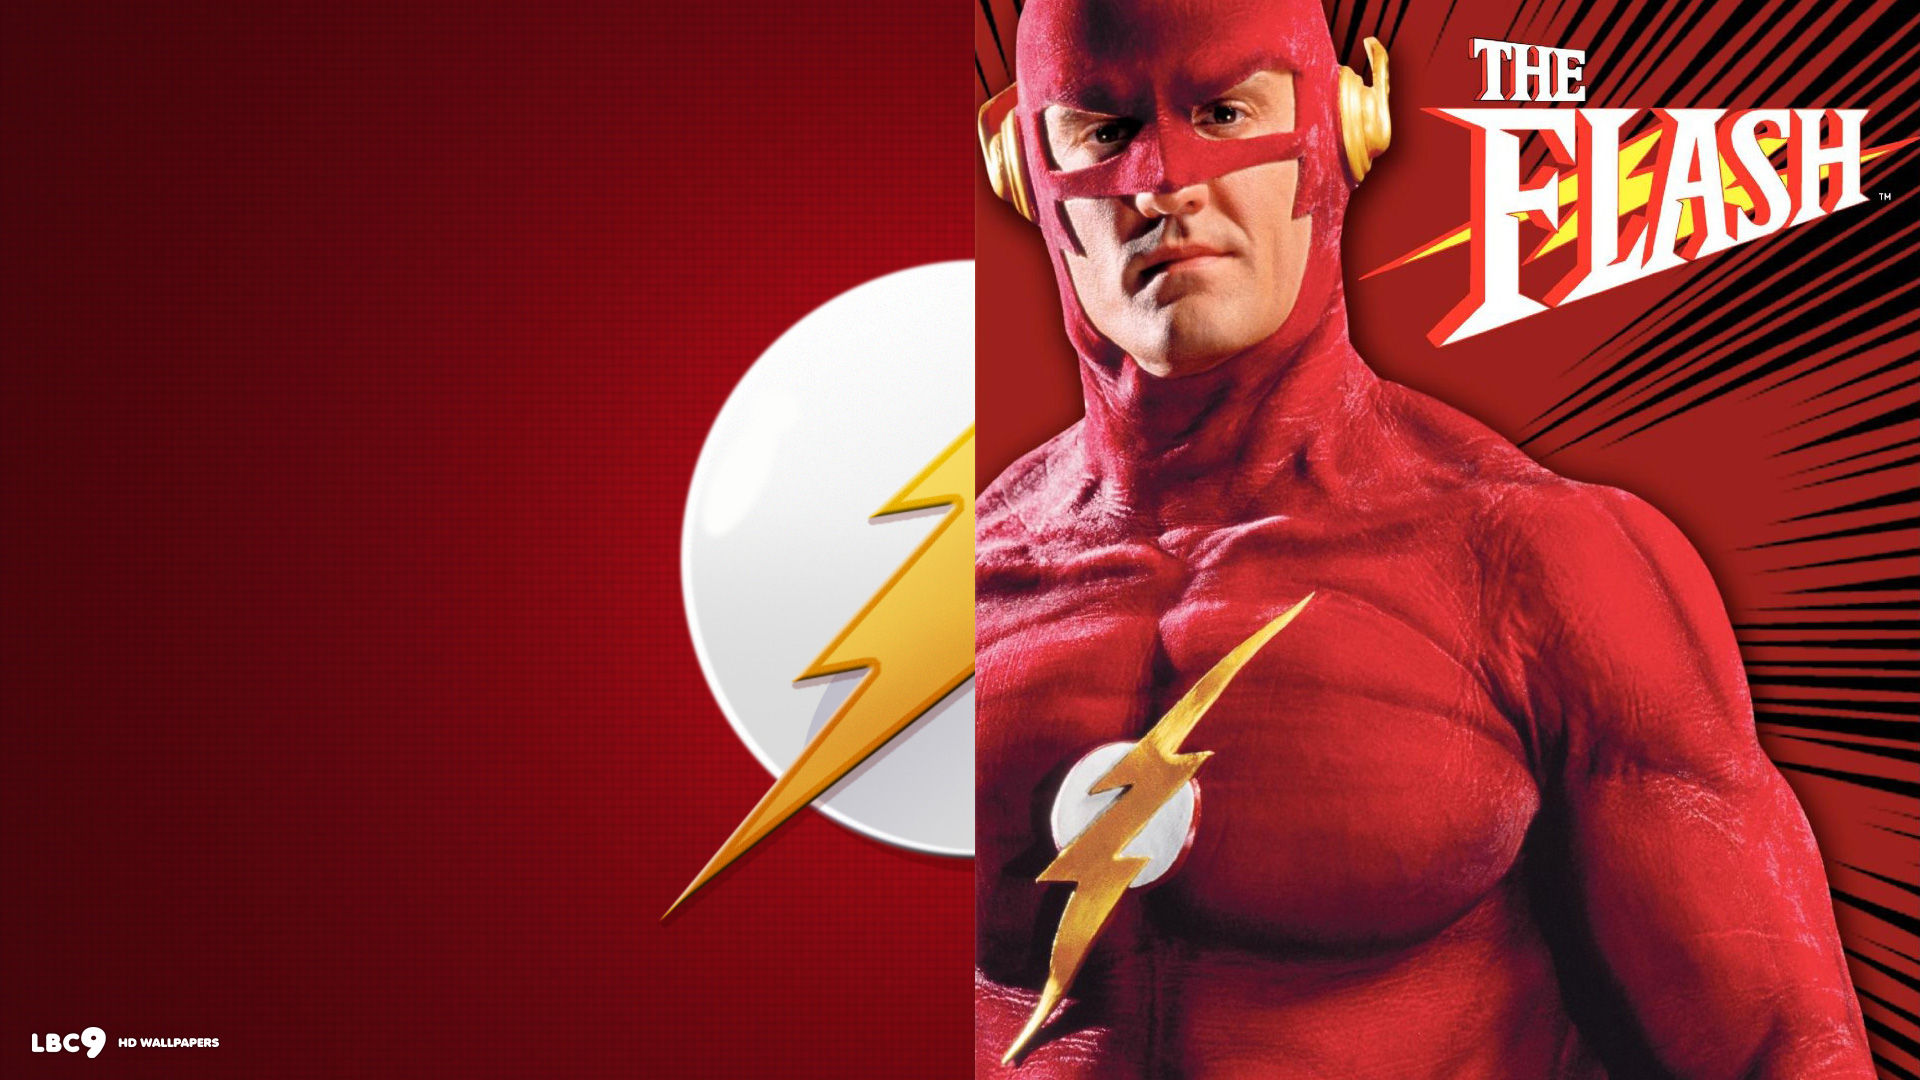 The Flash Hd Desktop Wallpaper High Definition 1920x1080